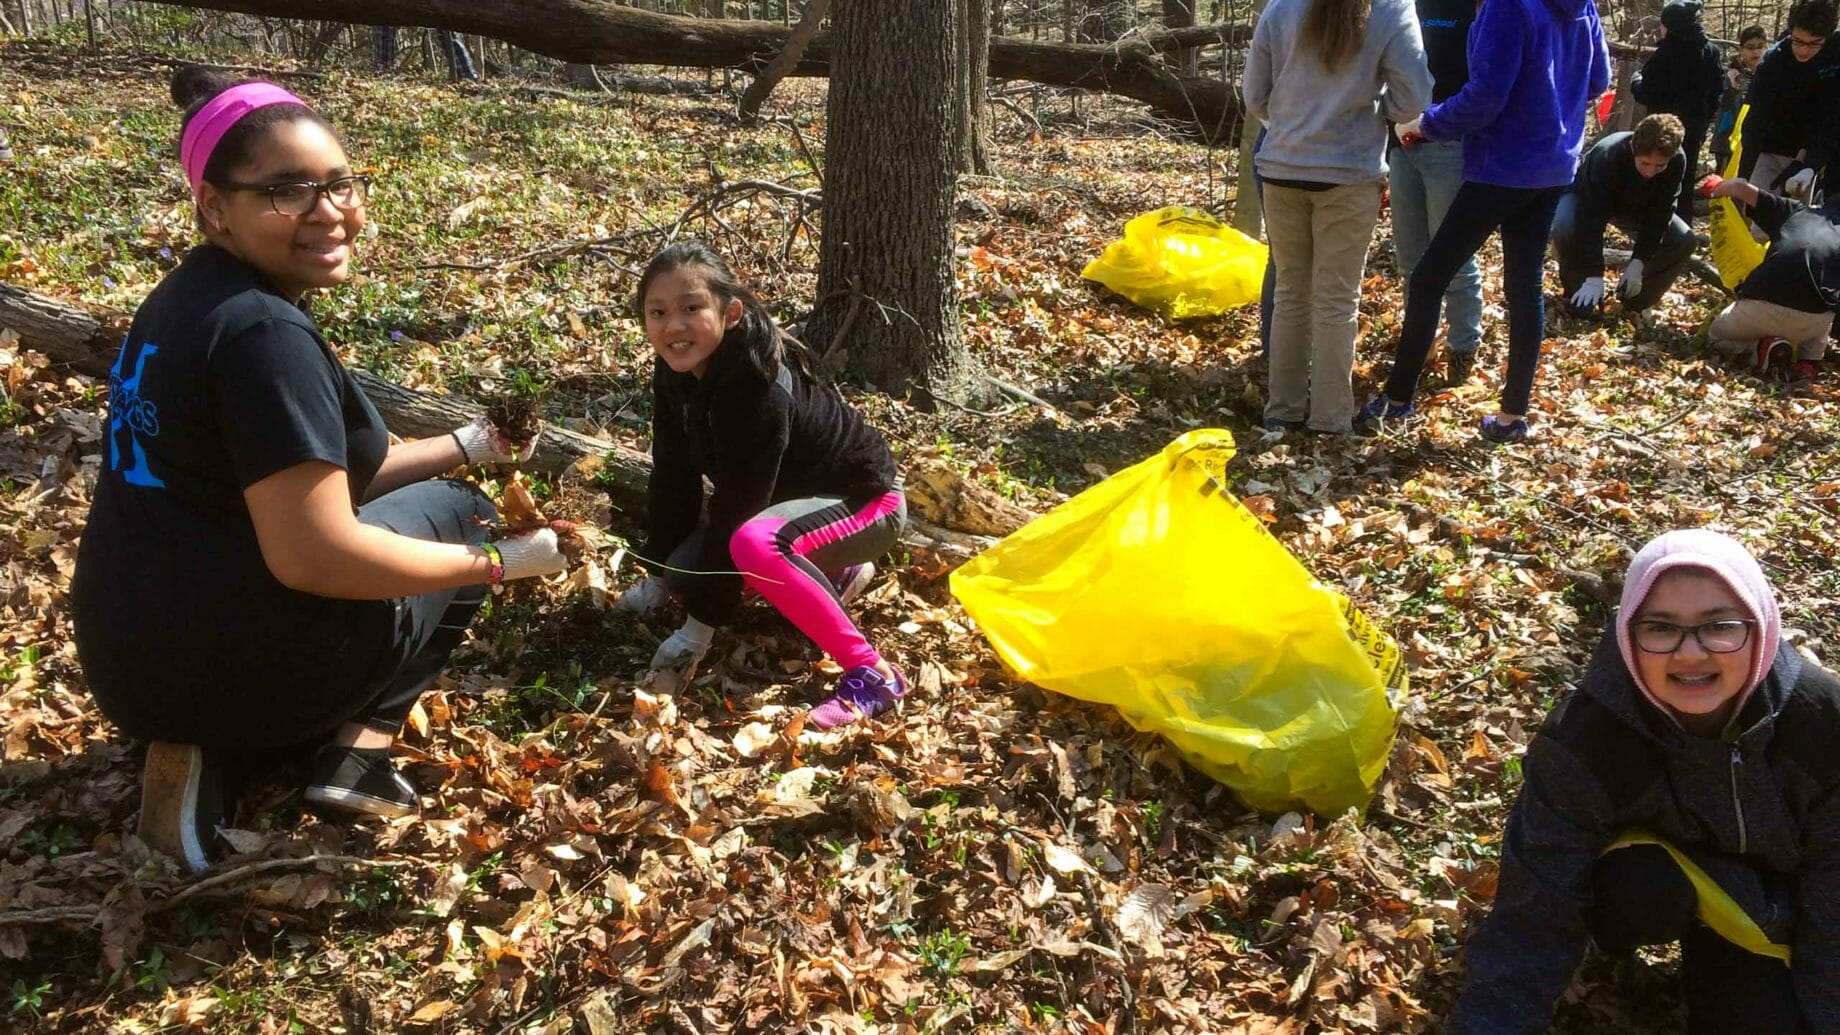 Students Cleaning Up Leaves Outdoors